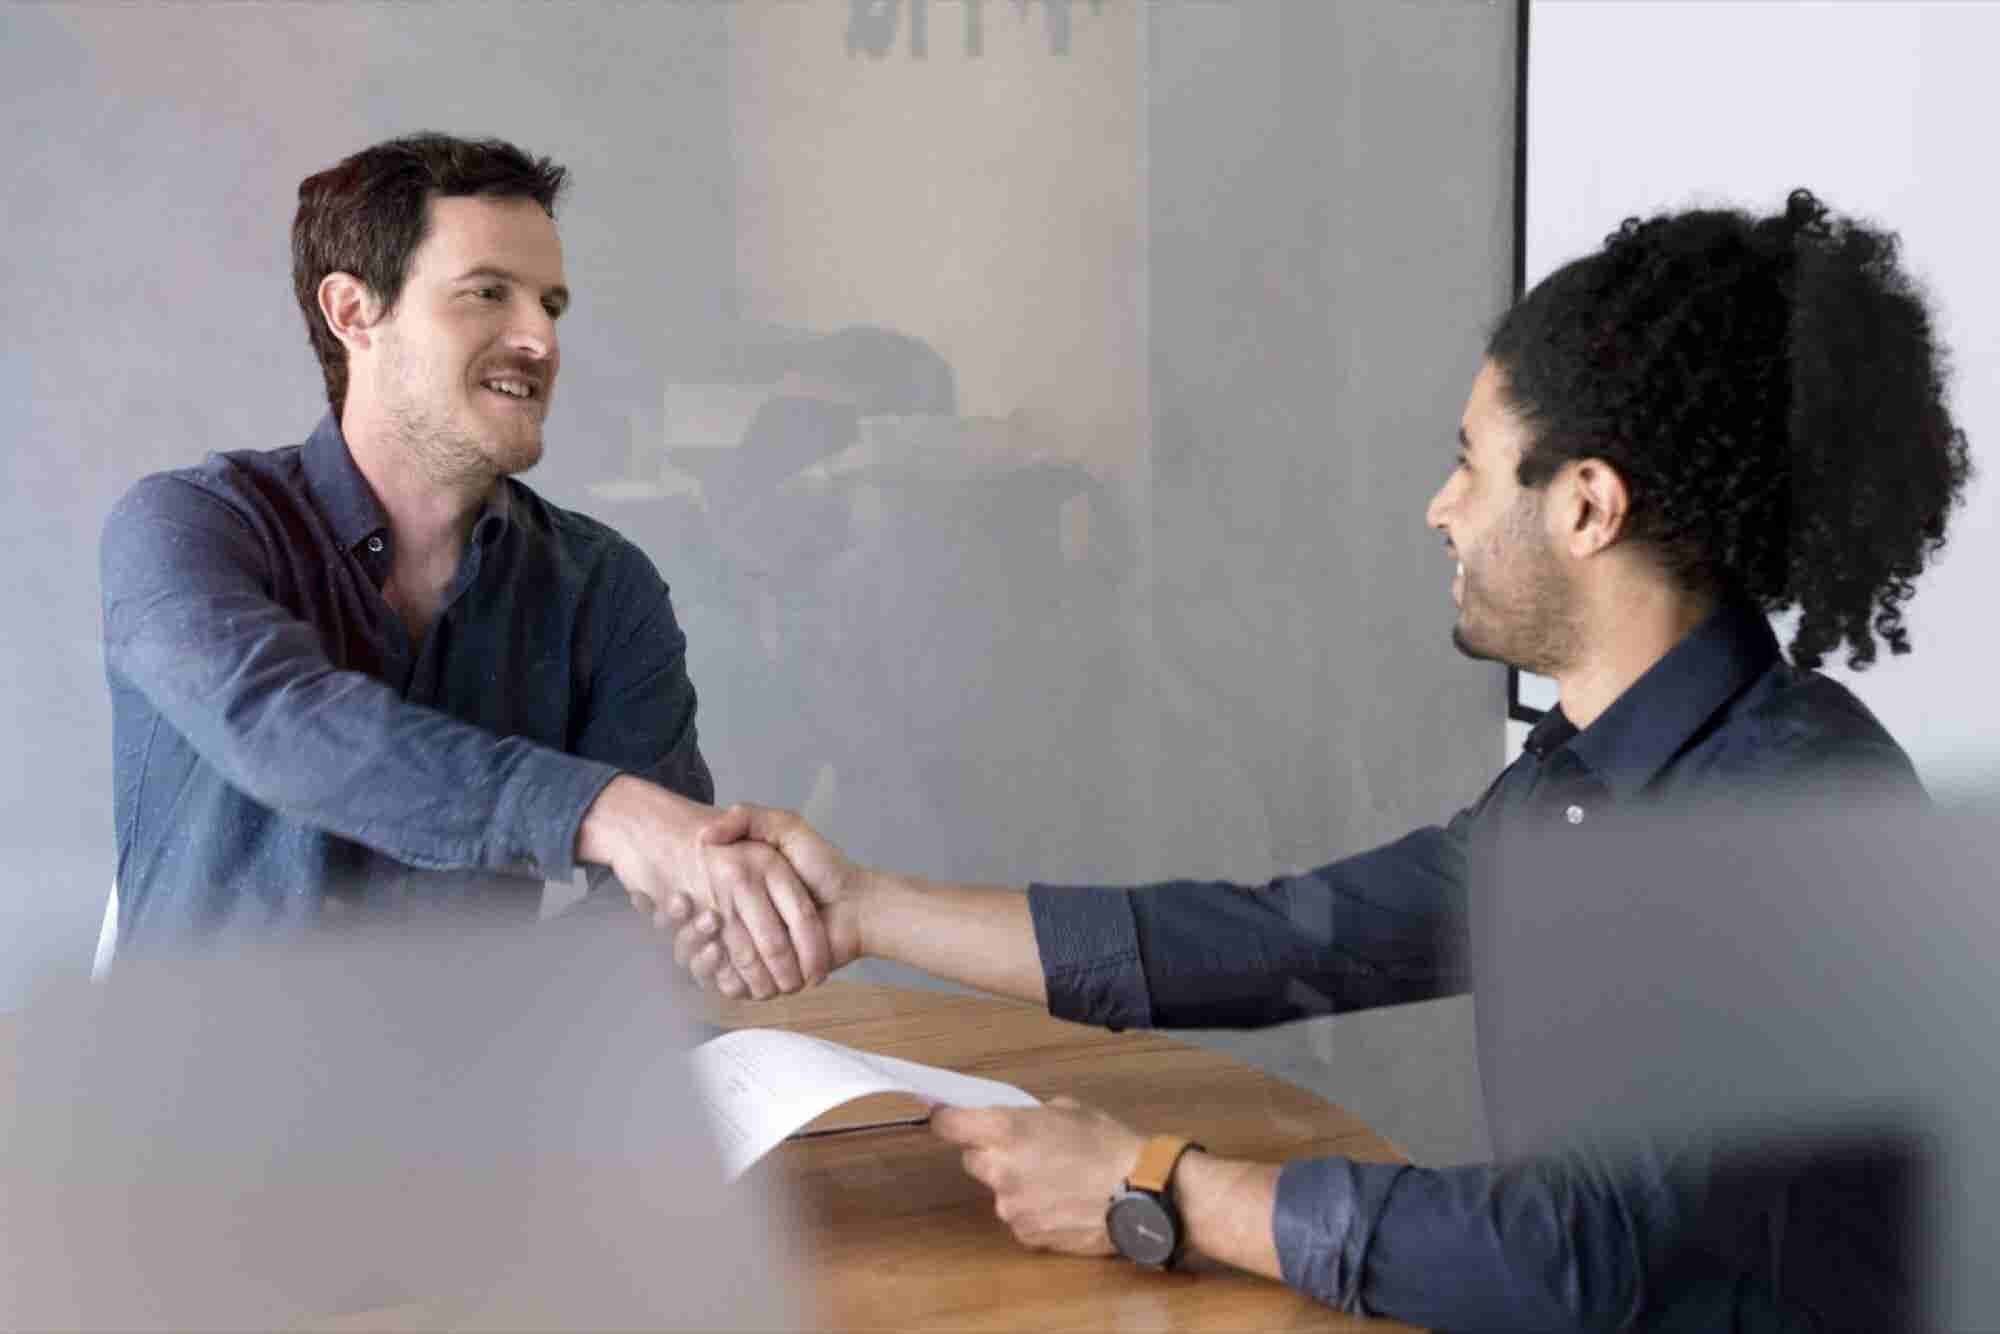 7 Reasons to Never Send Your Deck to an Investor Before You Meet in Person